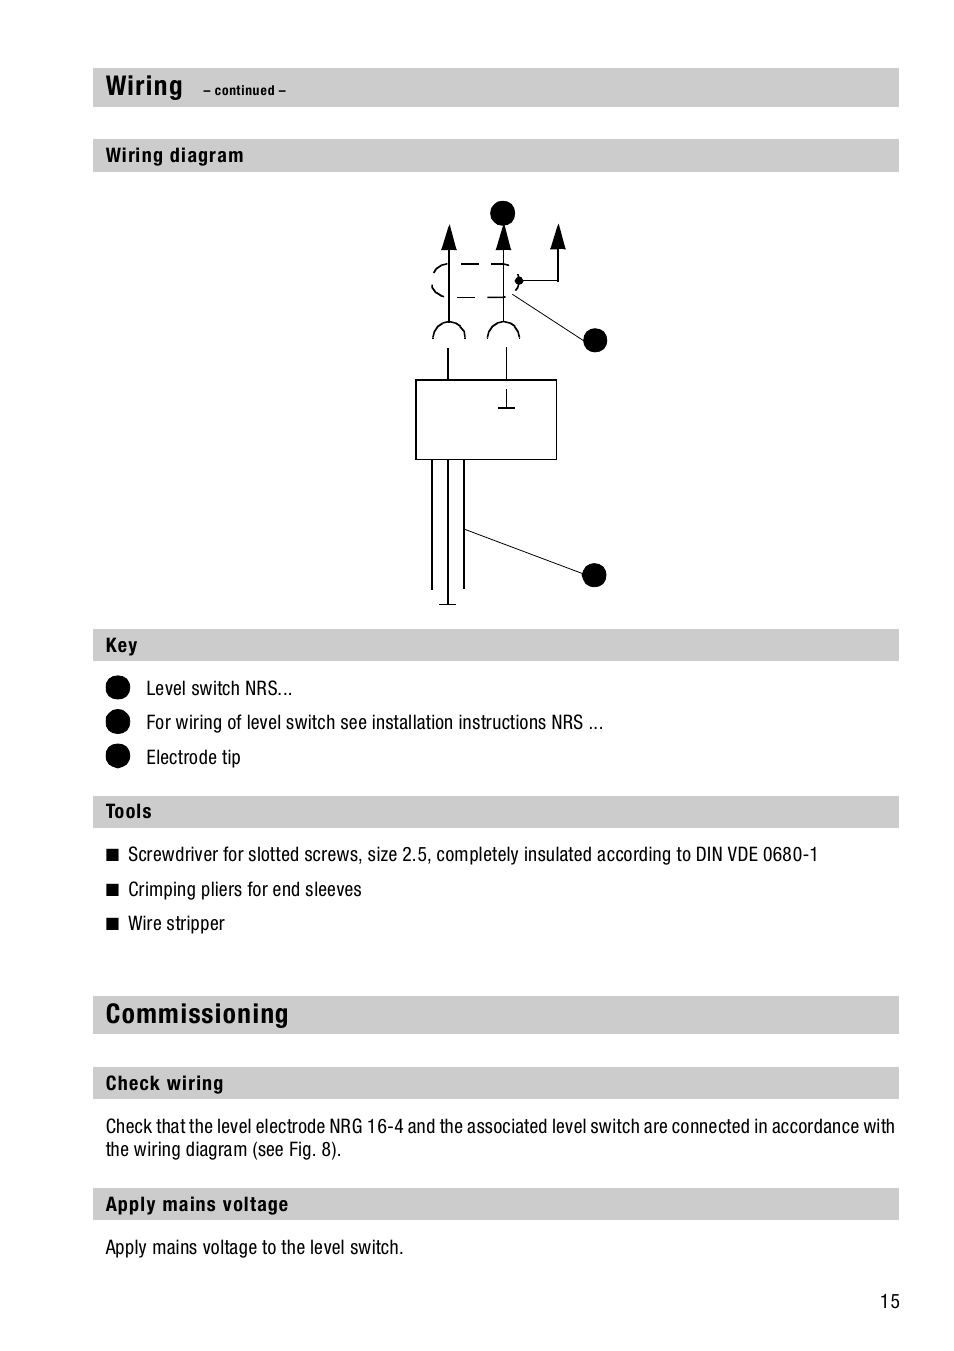 Wiring Diagram  Tools  Commissioning